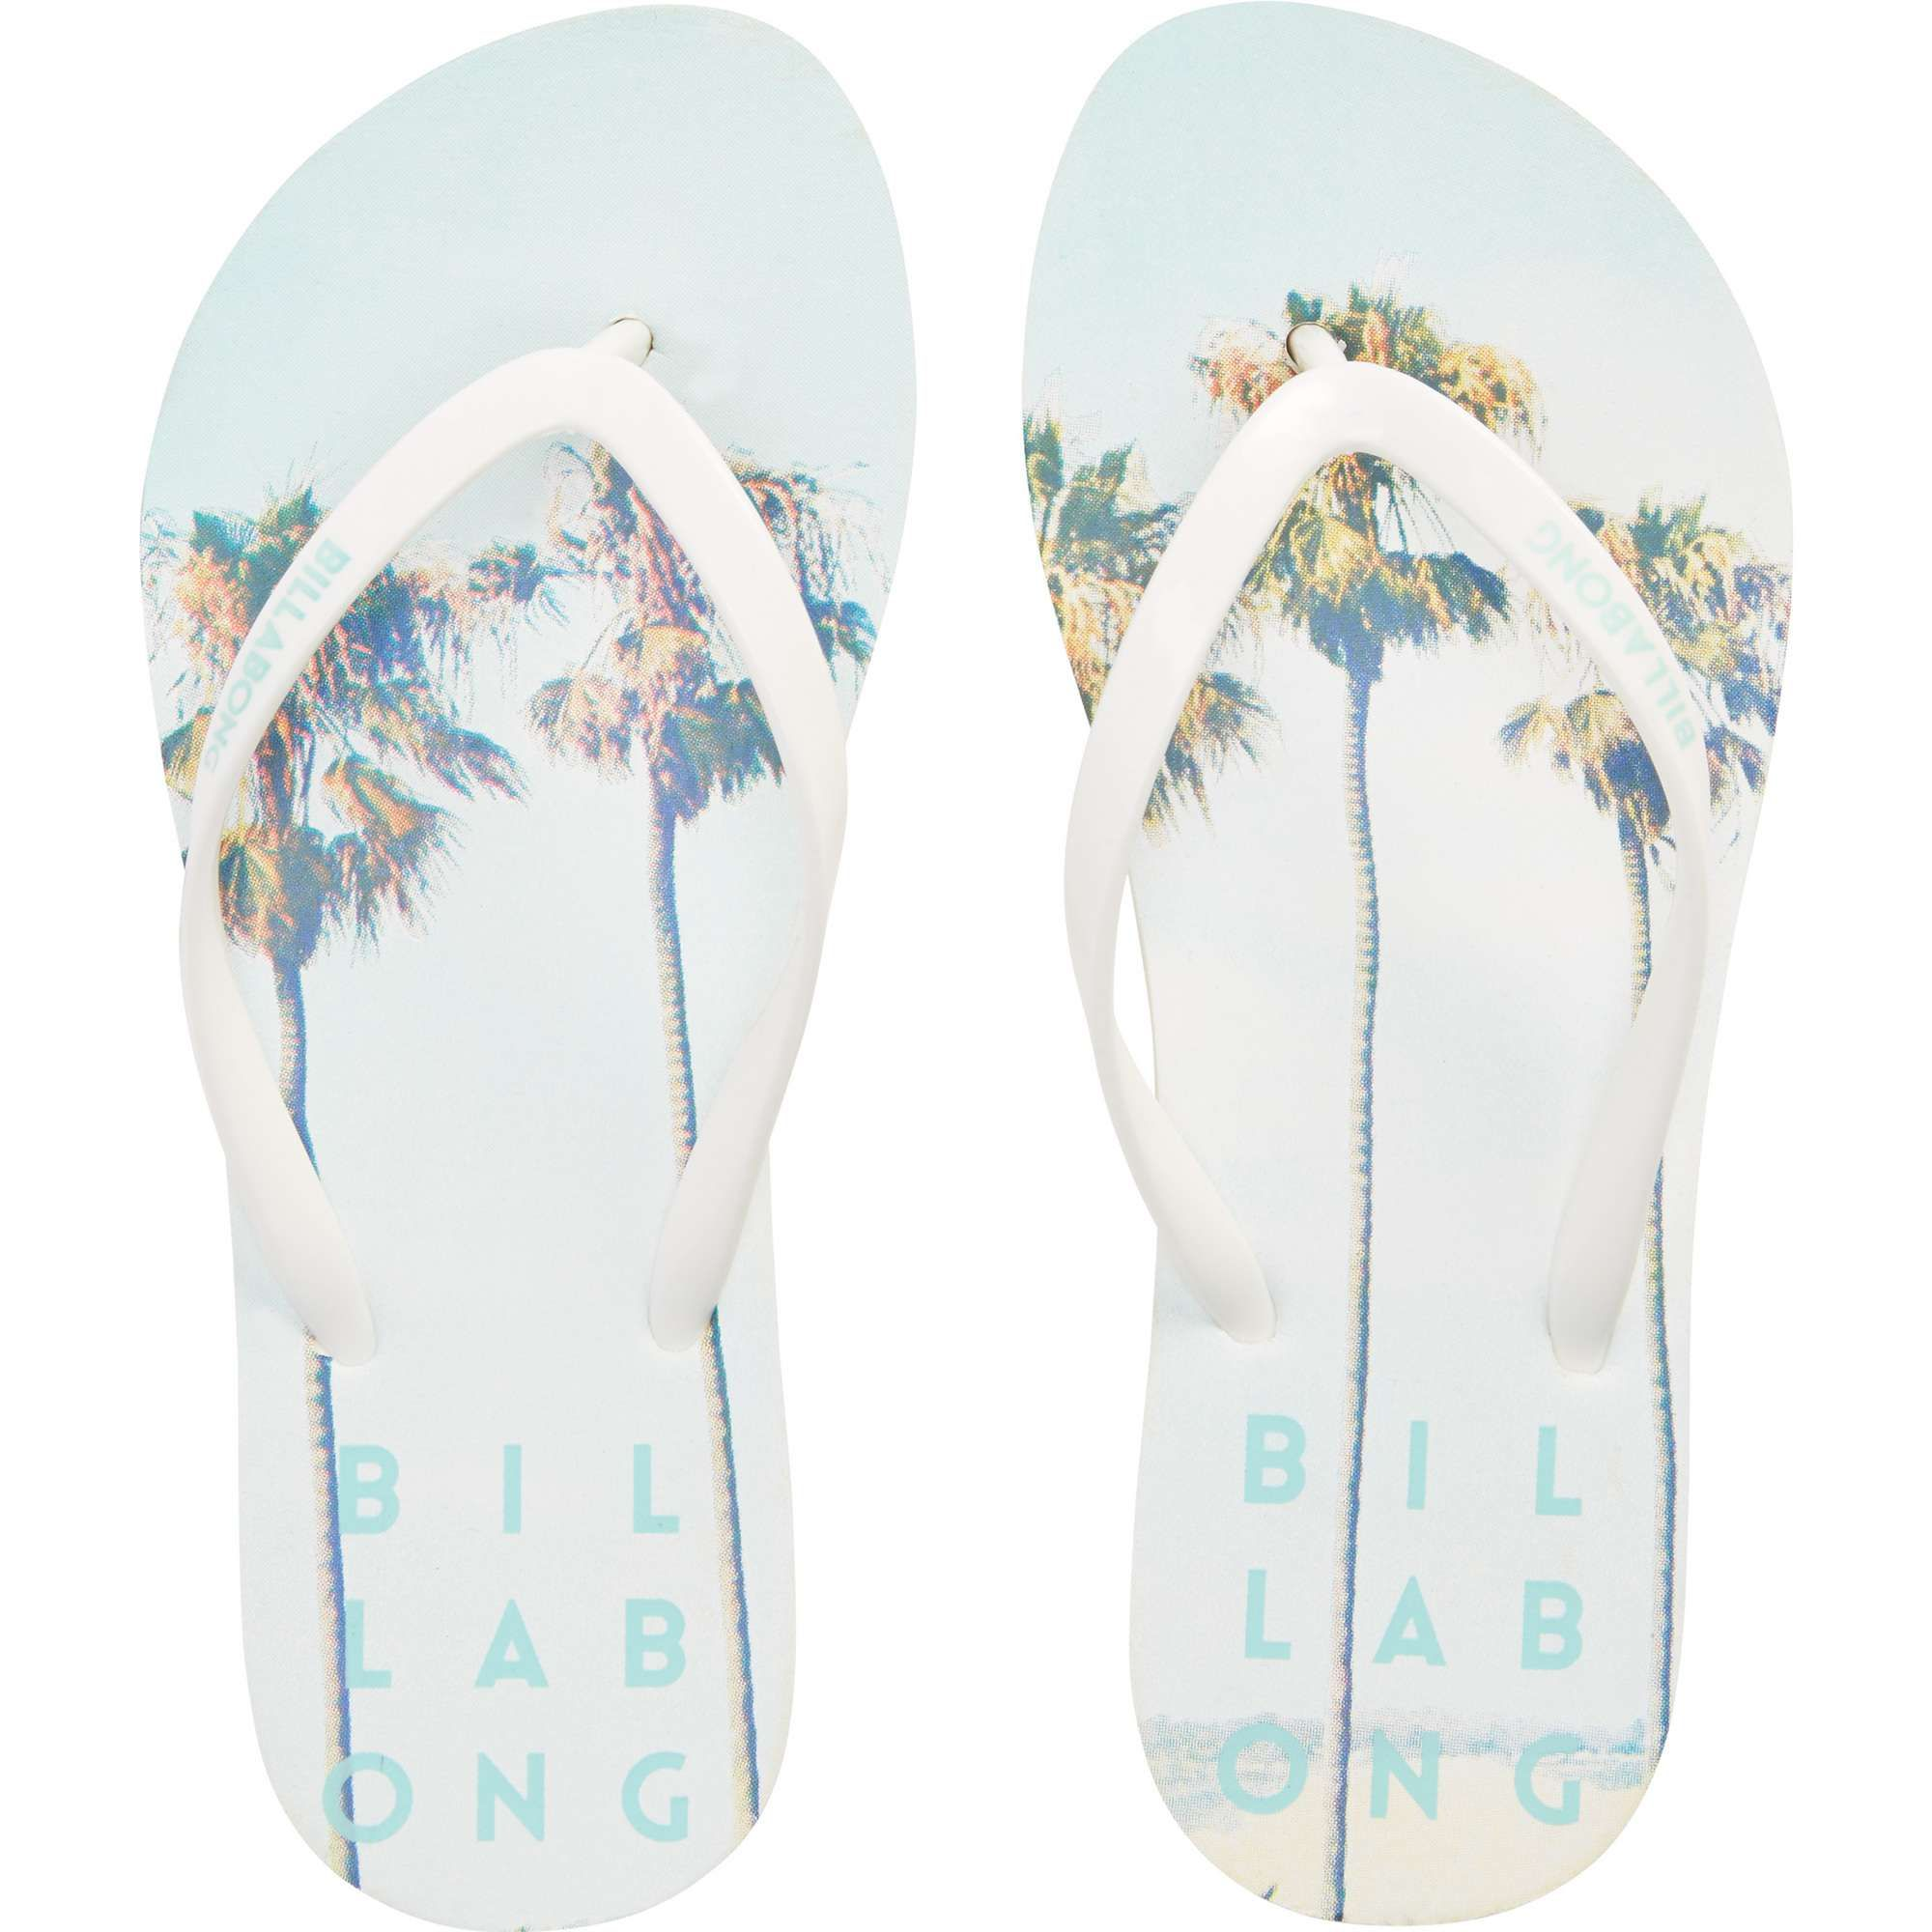 Get free shipping at the Billabong online store. Never leave your prints in the sand with these standout sandals.